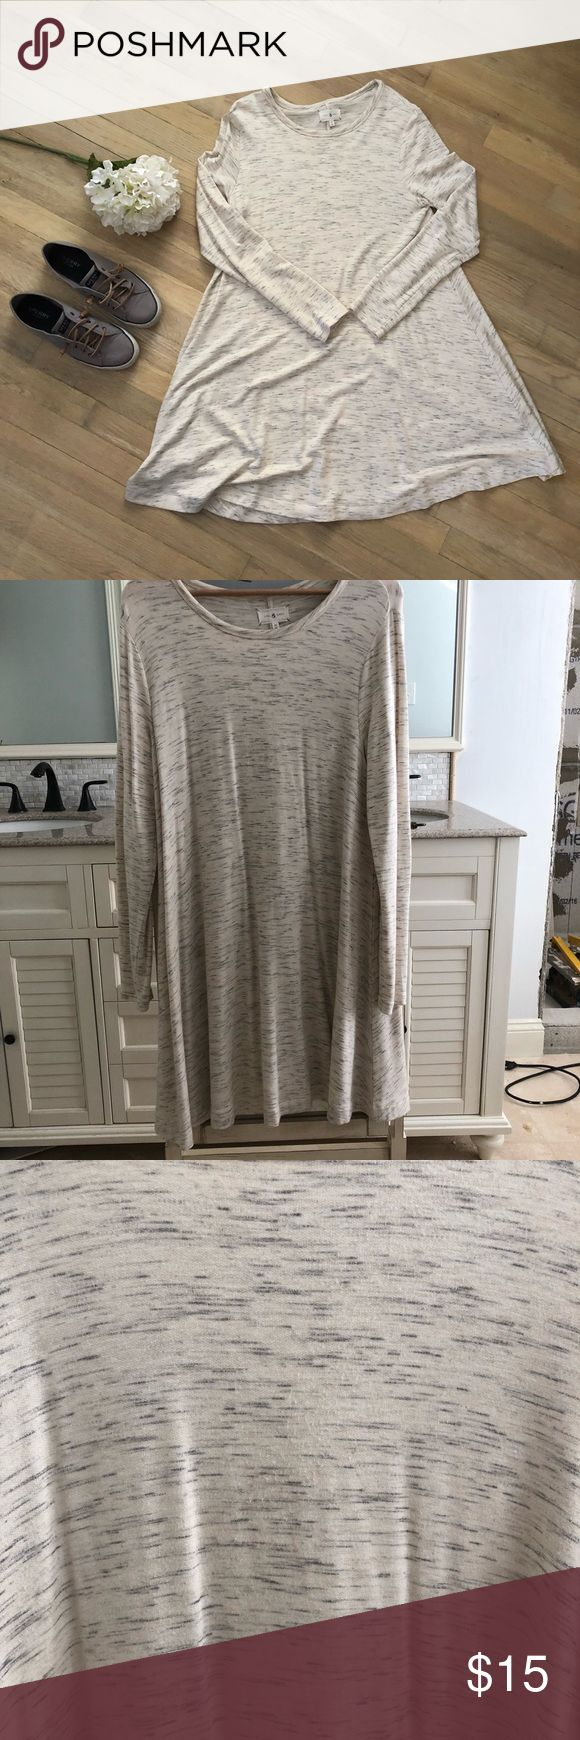 Lou & Grey Swing Dress This Lou & Grey dress is marled with Greys and whites. It is super swingy and alittle oversized. It could fit a L also even though it's a medium. It has some slight pilling in the front but other then that it's in great condition! Lou & Grey Dresses Long Sleeve